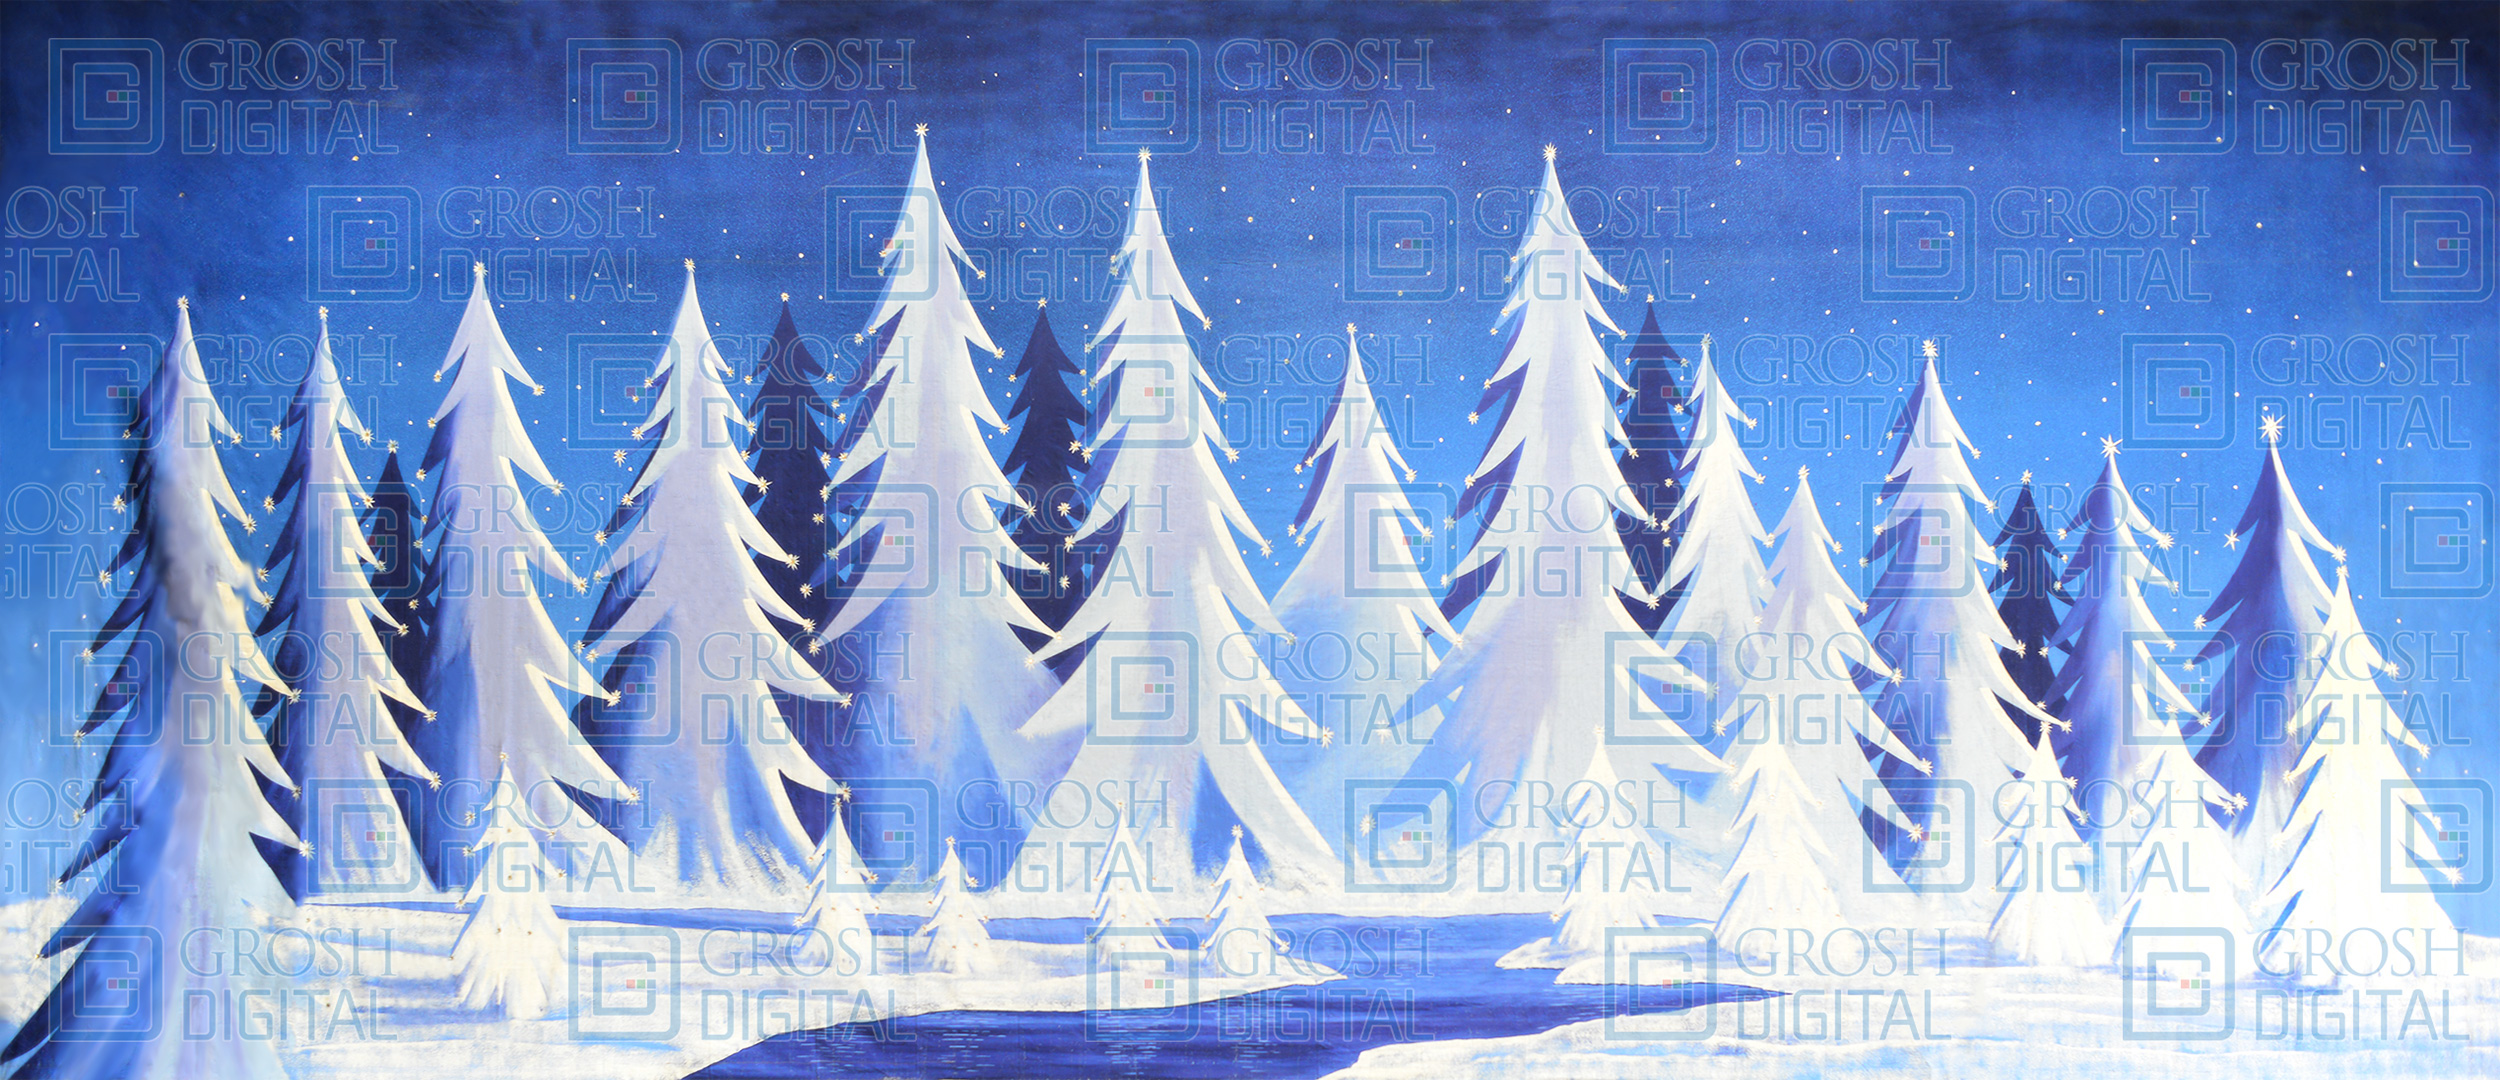 Stylized Snow Landscape Projected Backdrop for Forest, Frozen, Landscapes, Nutcracker, Snows